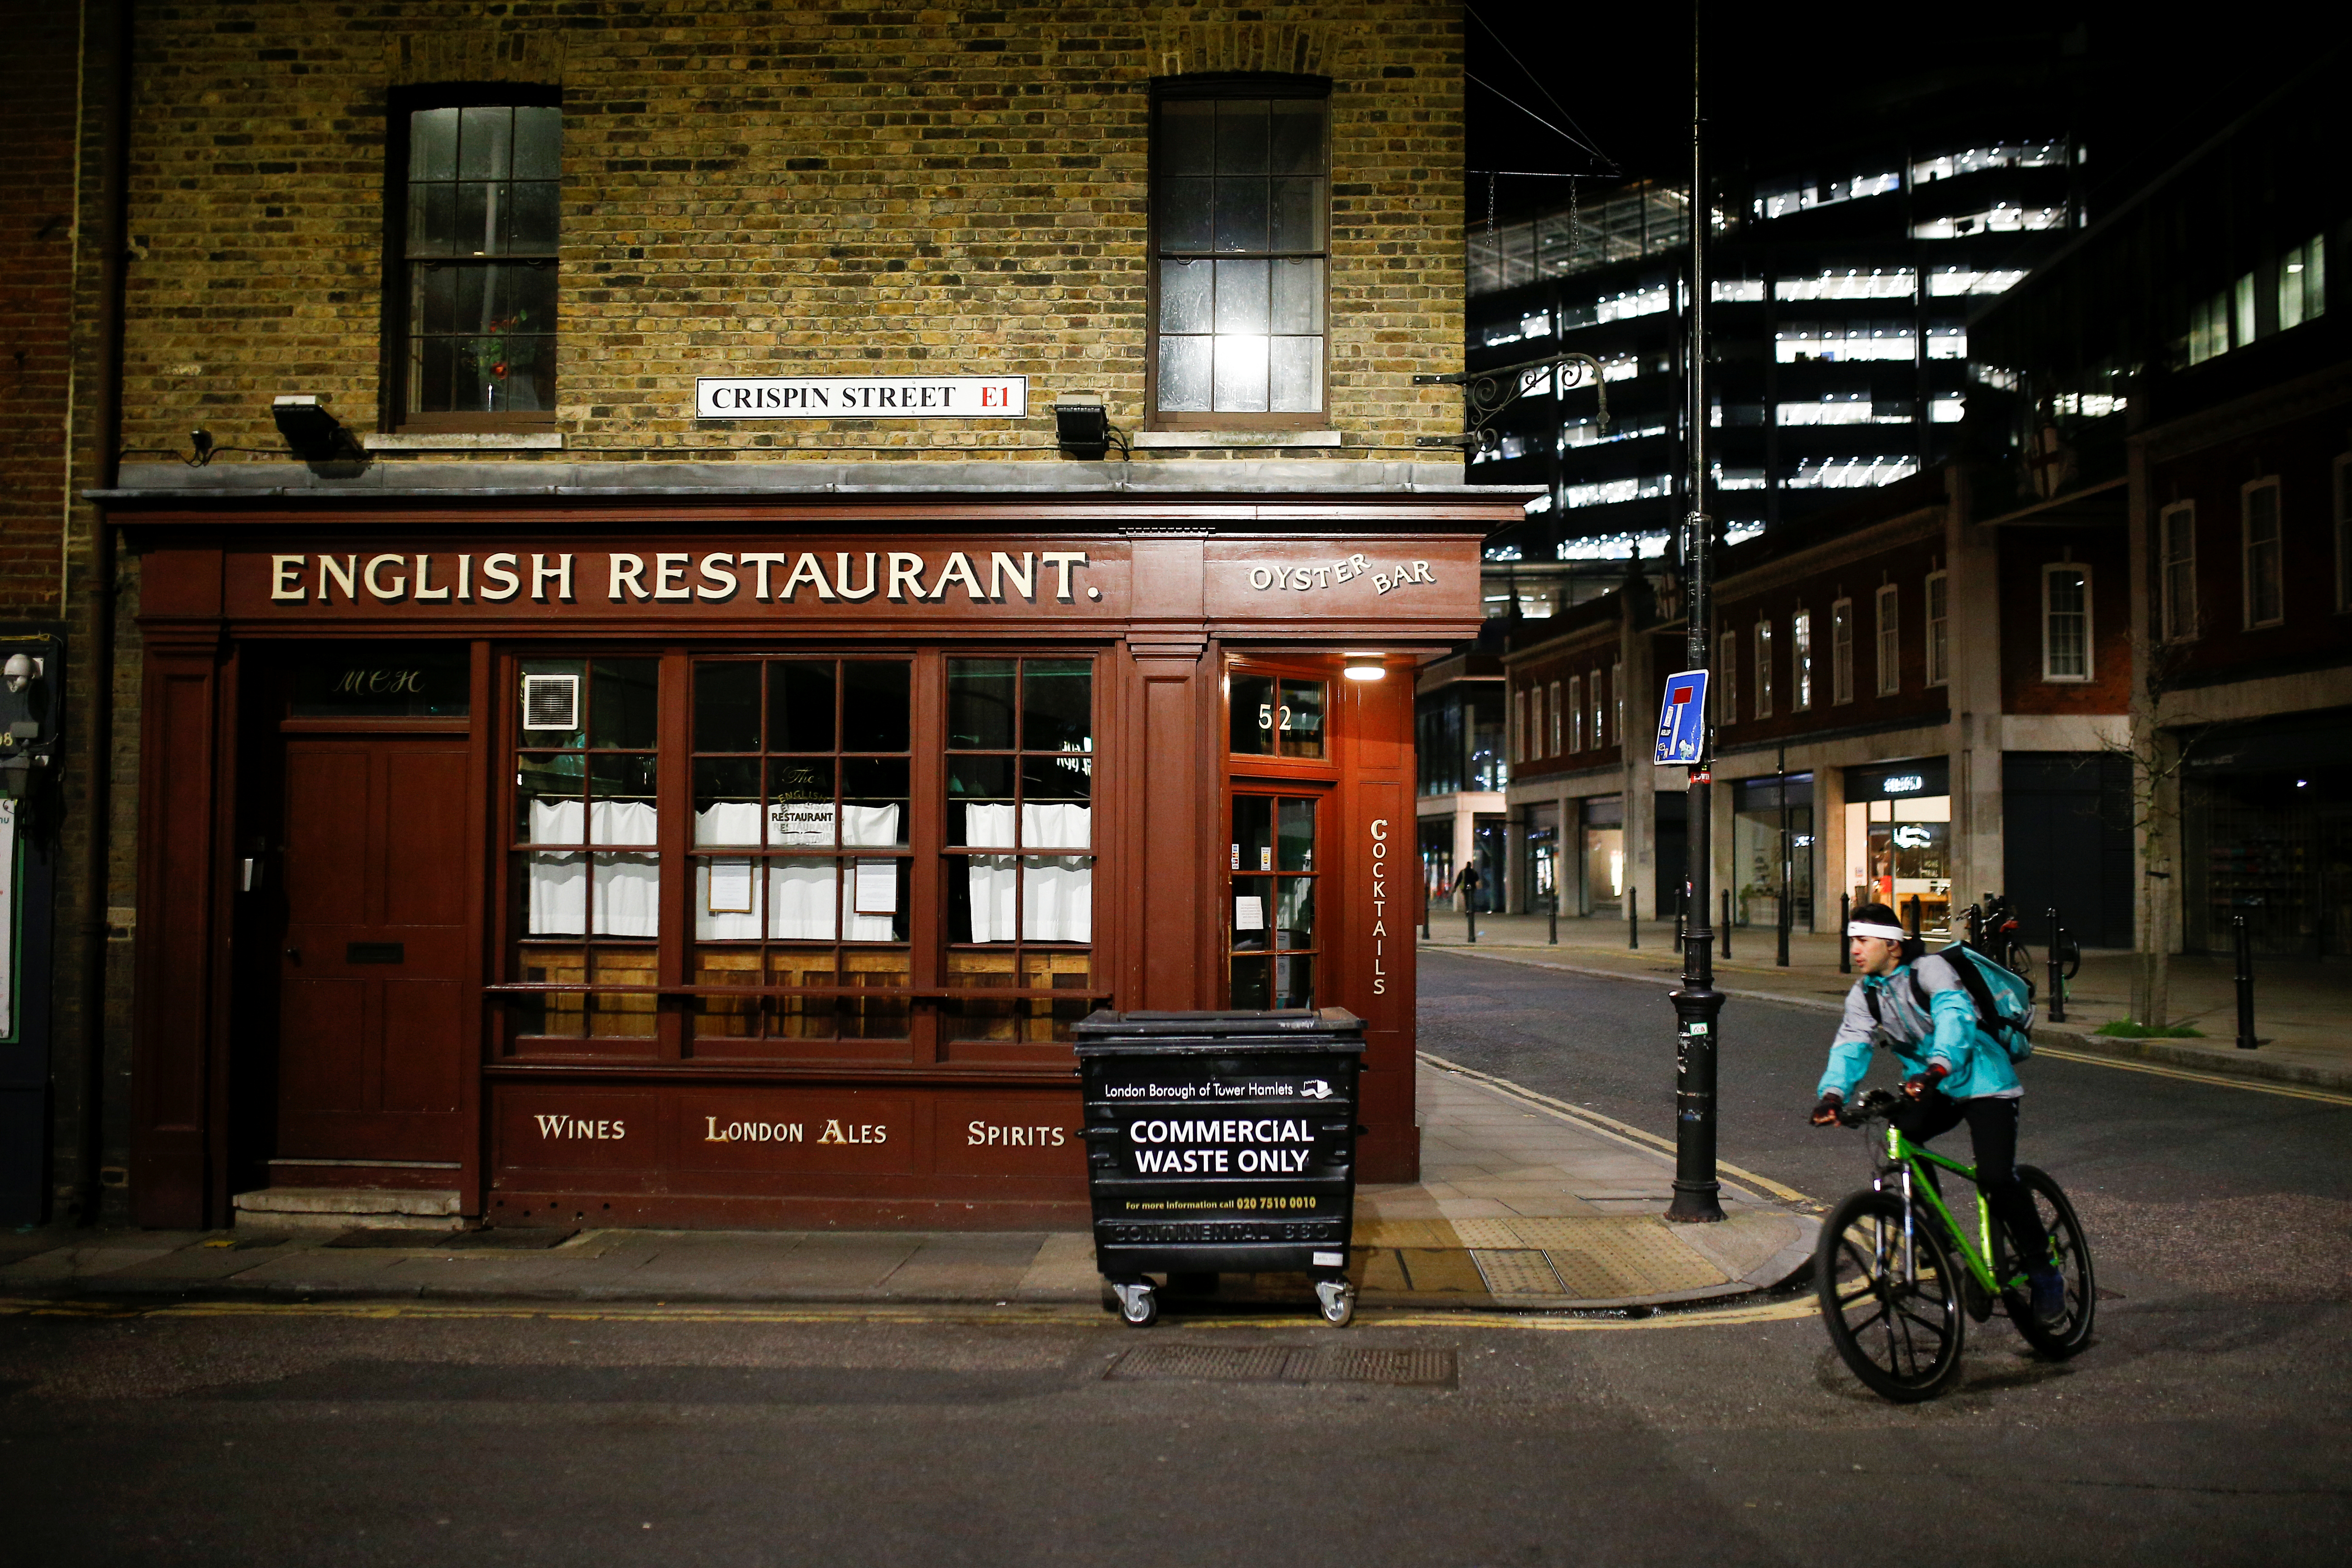 A food delivery man cycles past a closed restaurant, on the day Prime Minister Boris Johnson ordered all restaurants to close in response to the number of the coronavirus disease (COVID-19) cases continuing to grow, in London, Britain, March 20, 2020. REUTERS/Henry Nicholls